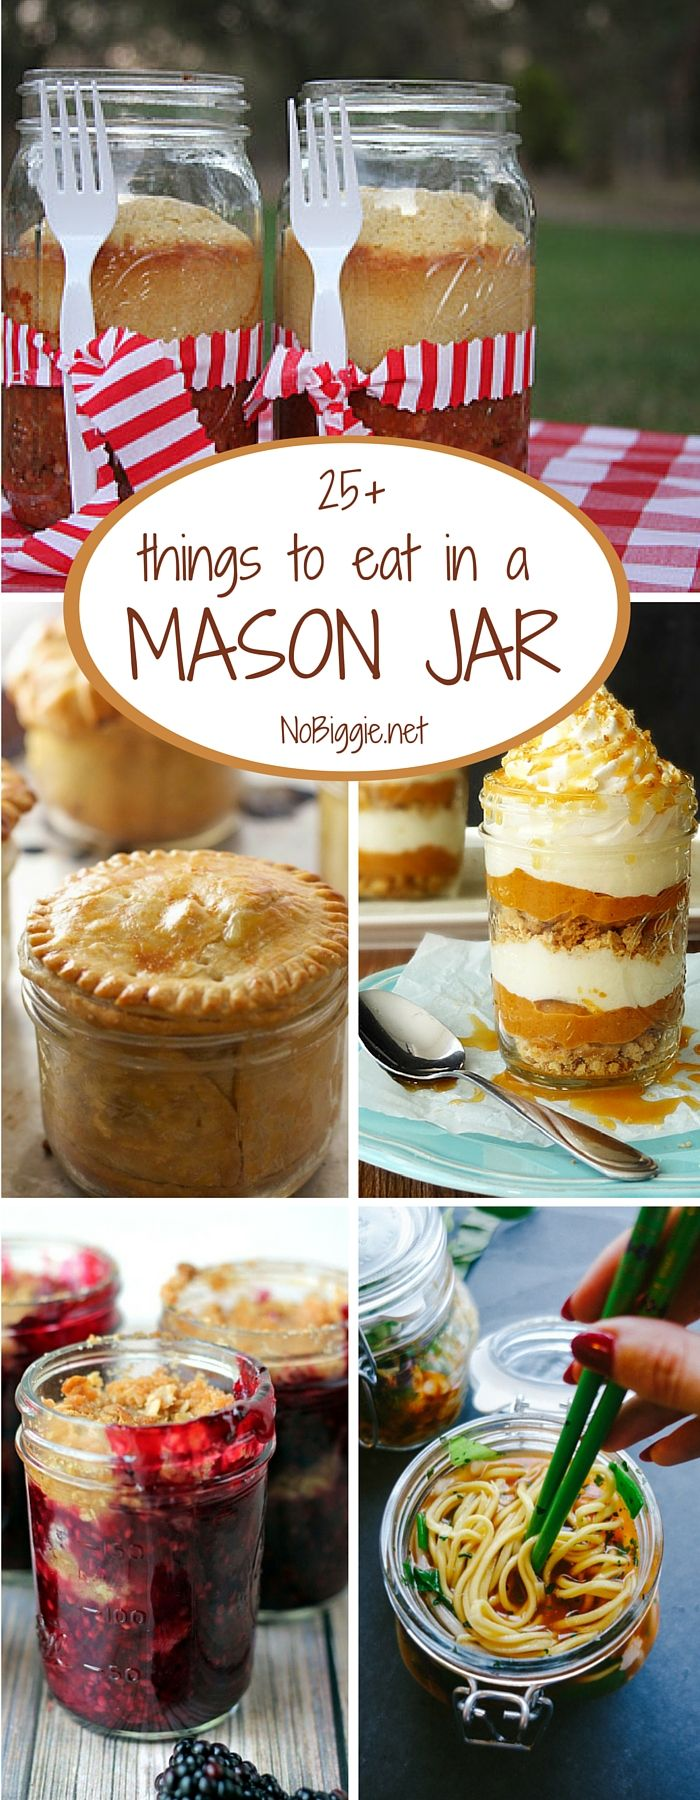 men fashion clothes online 25  things to eat in a mason jar   NoBiggie net